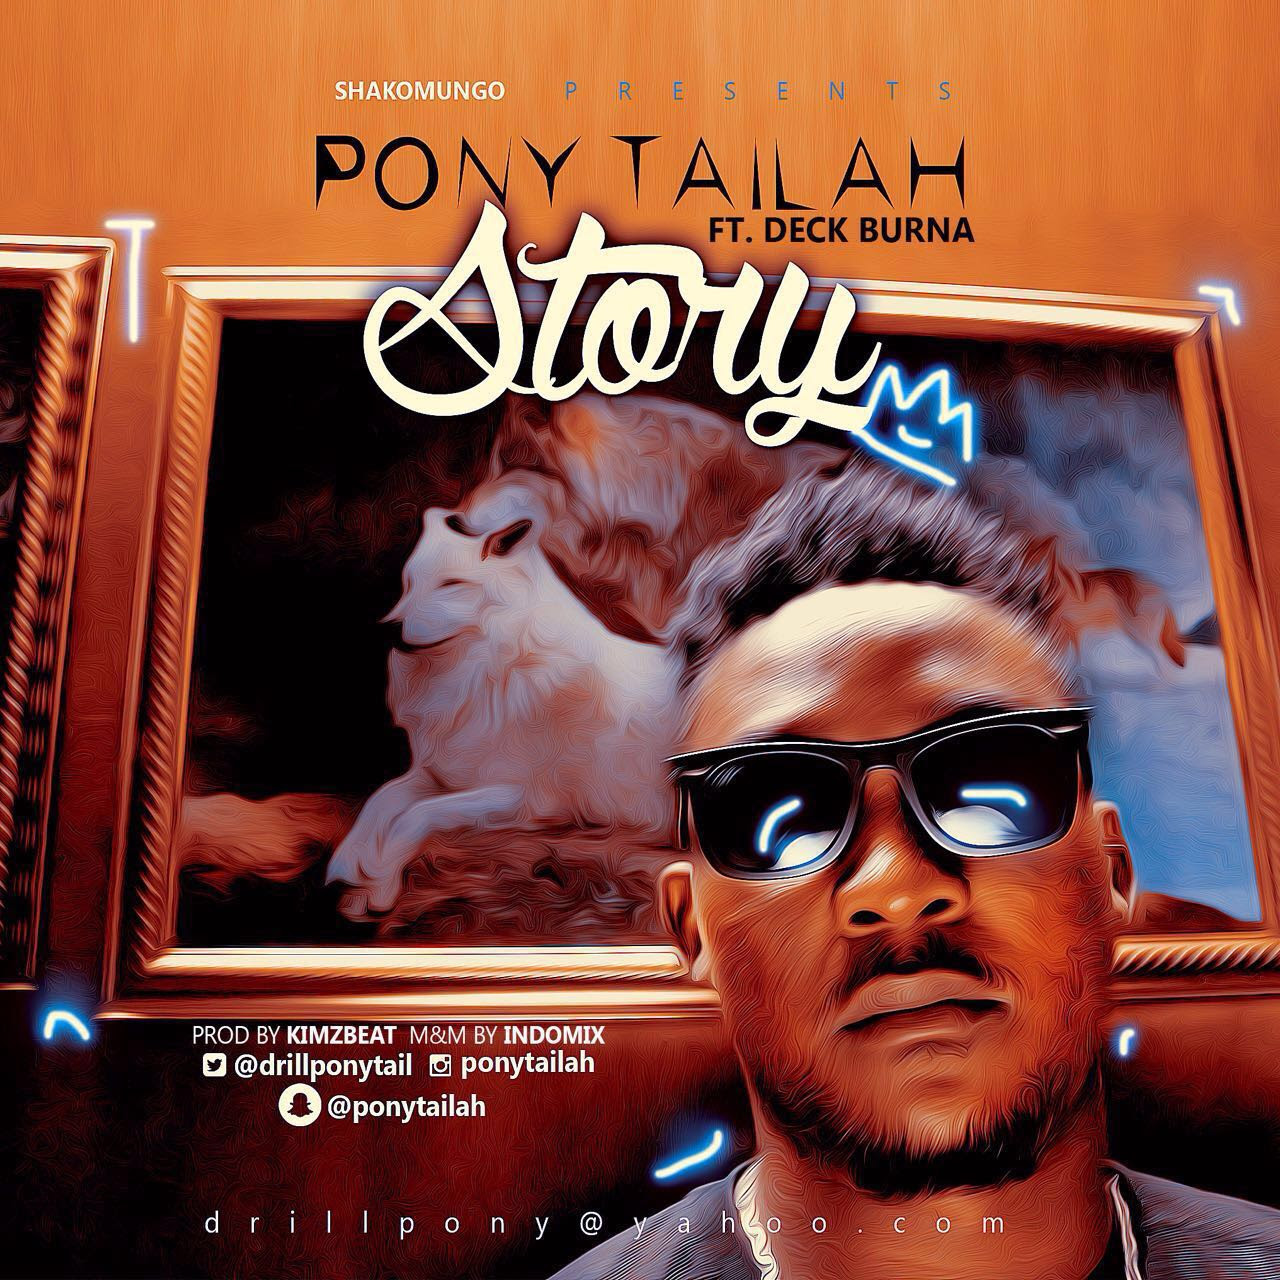 VIDEO: Pony Tailah – Story ft. Deck Burna